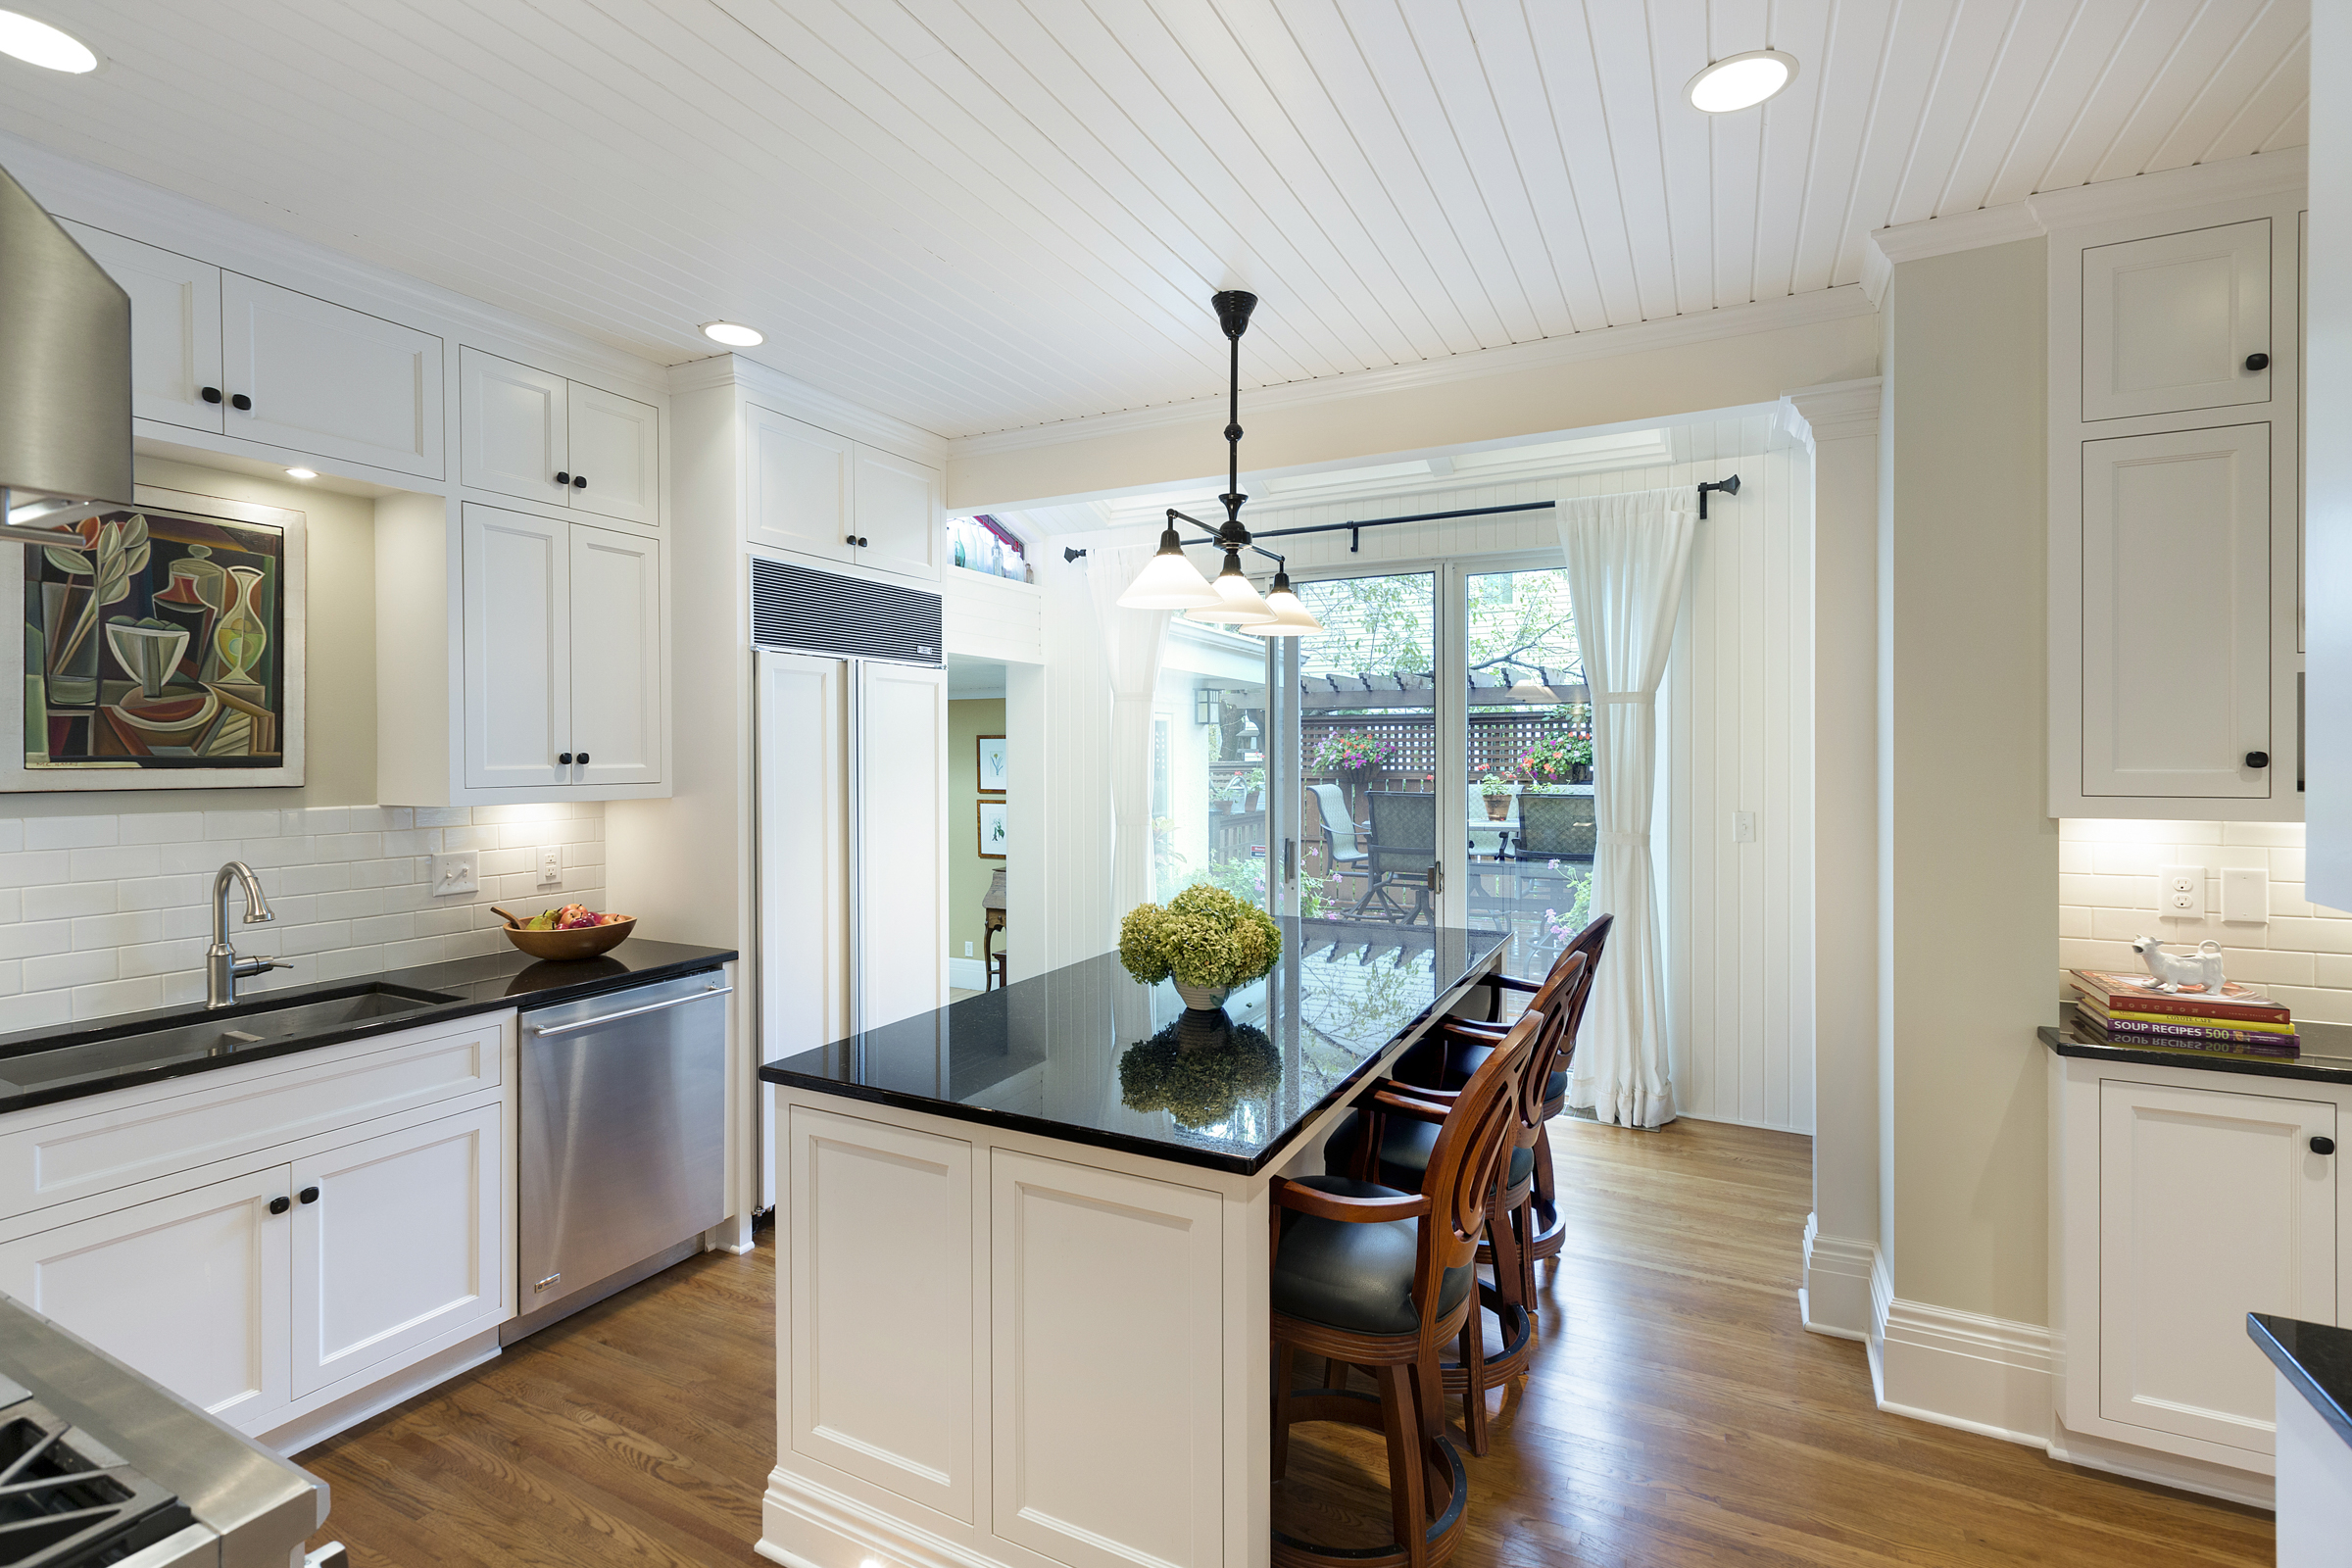 Kitchens | Carrigan Curtis Design Build